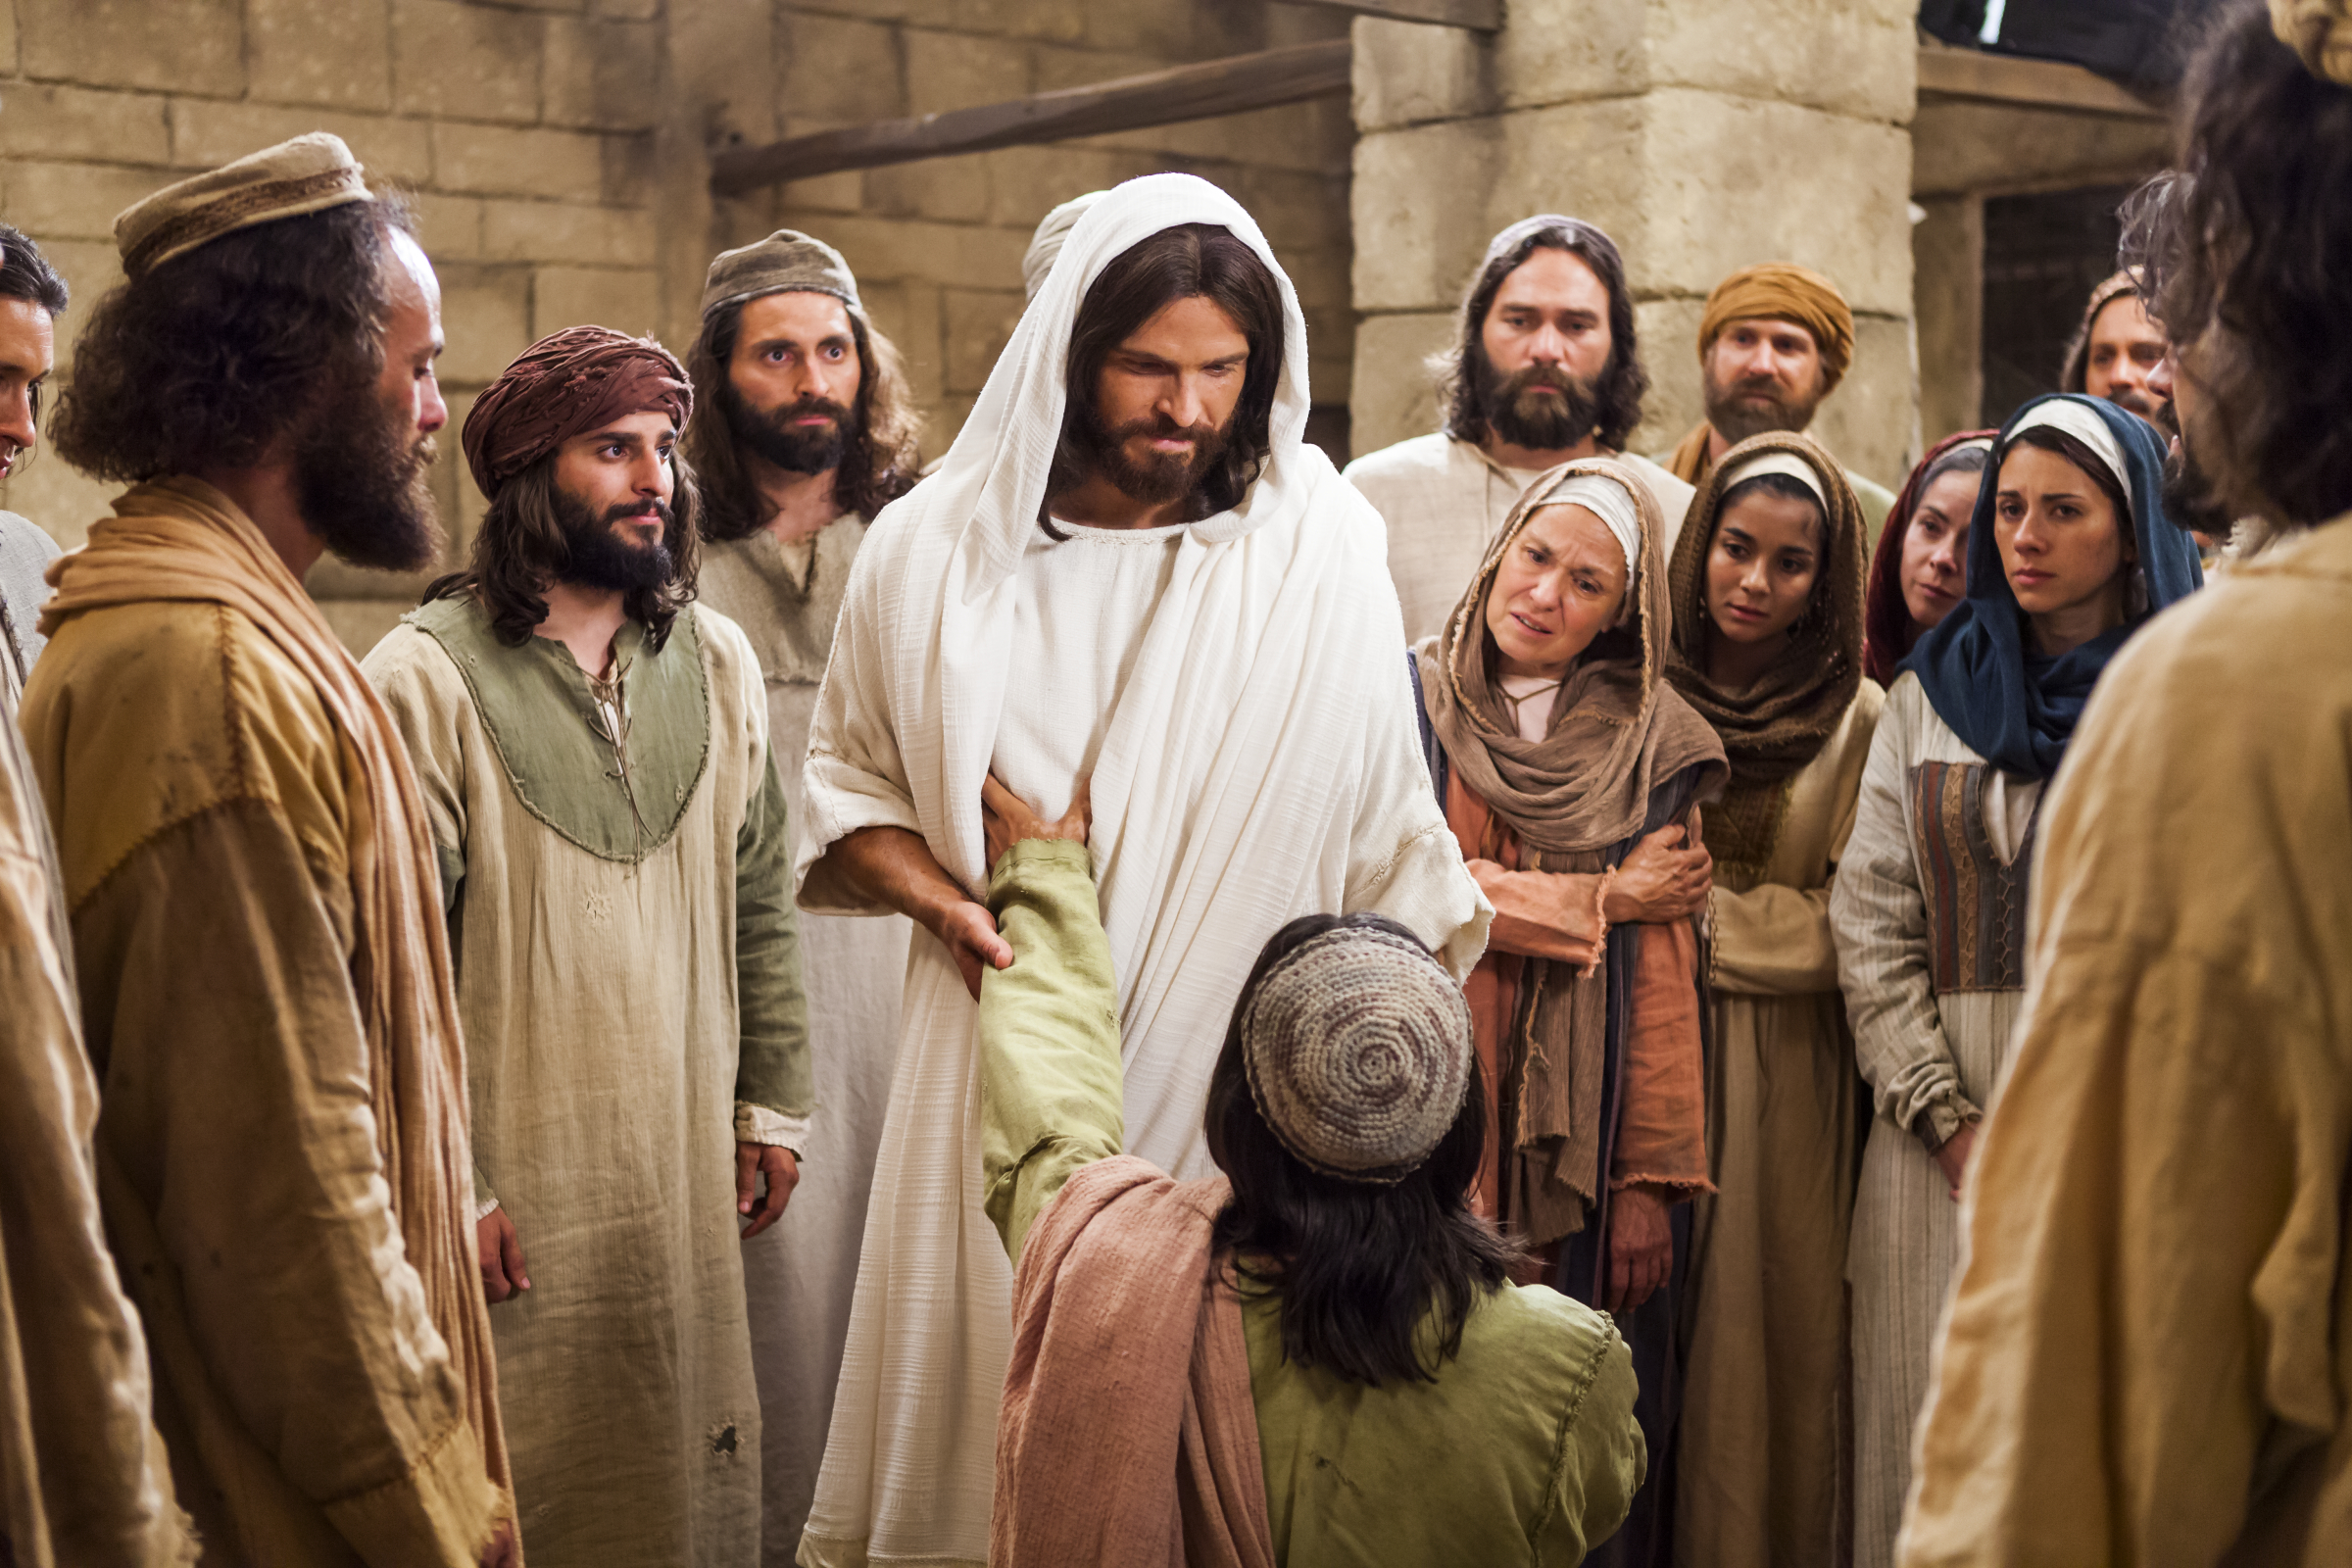 resurrected-christ-with-people-1103021-wallpaper